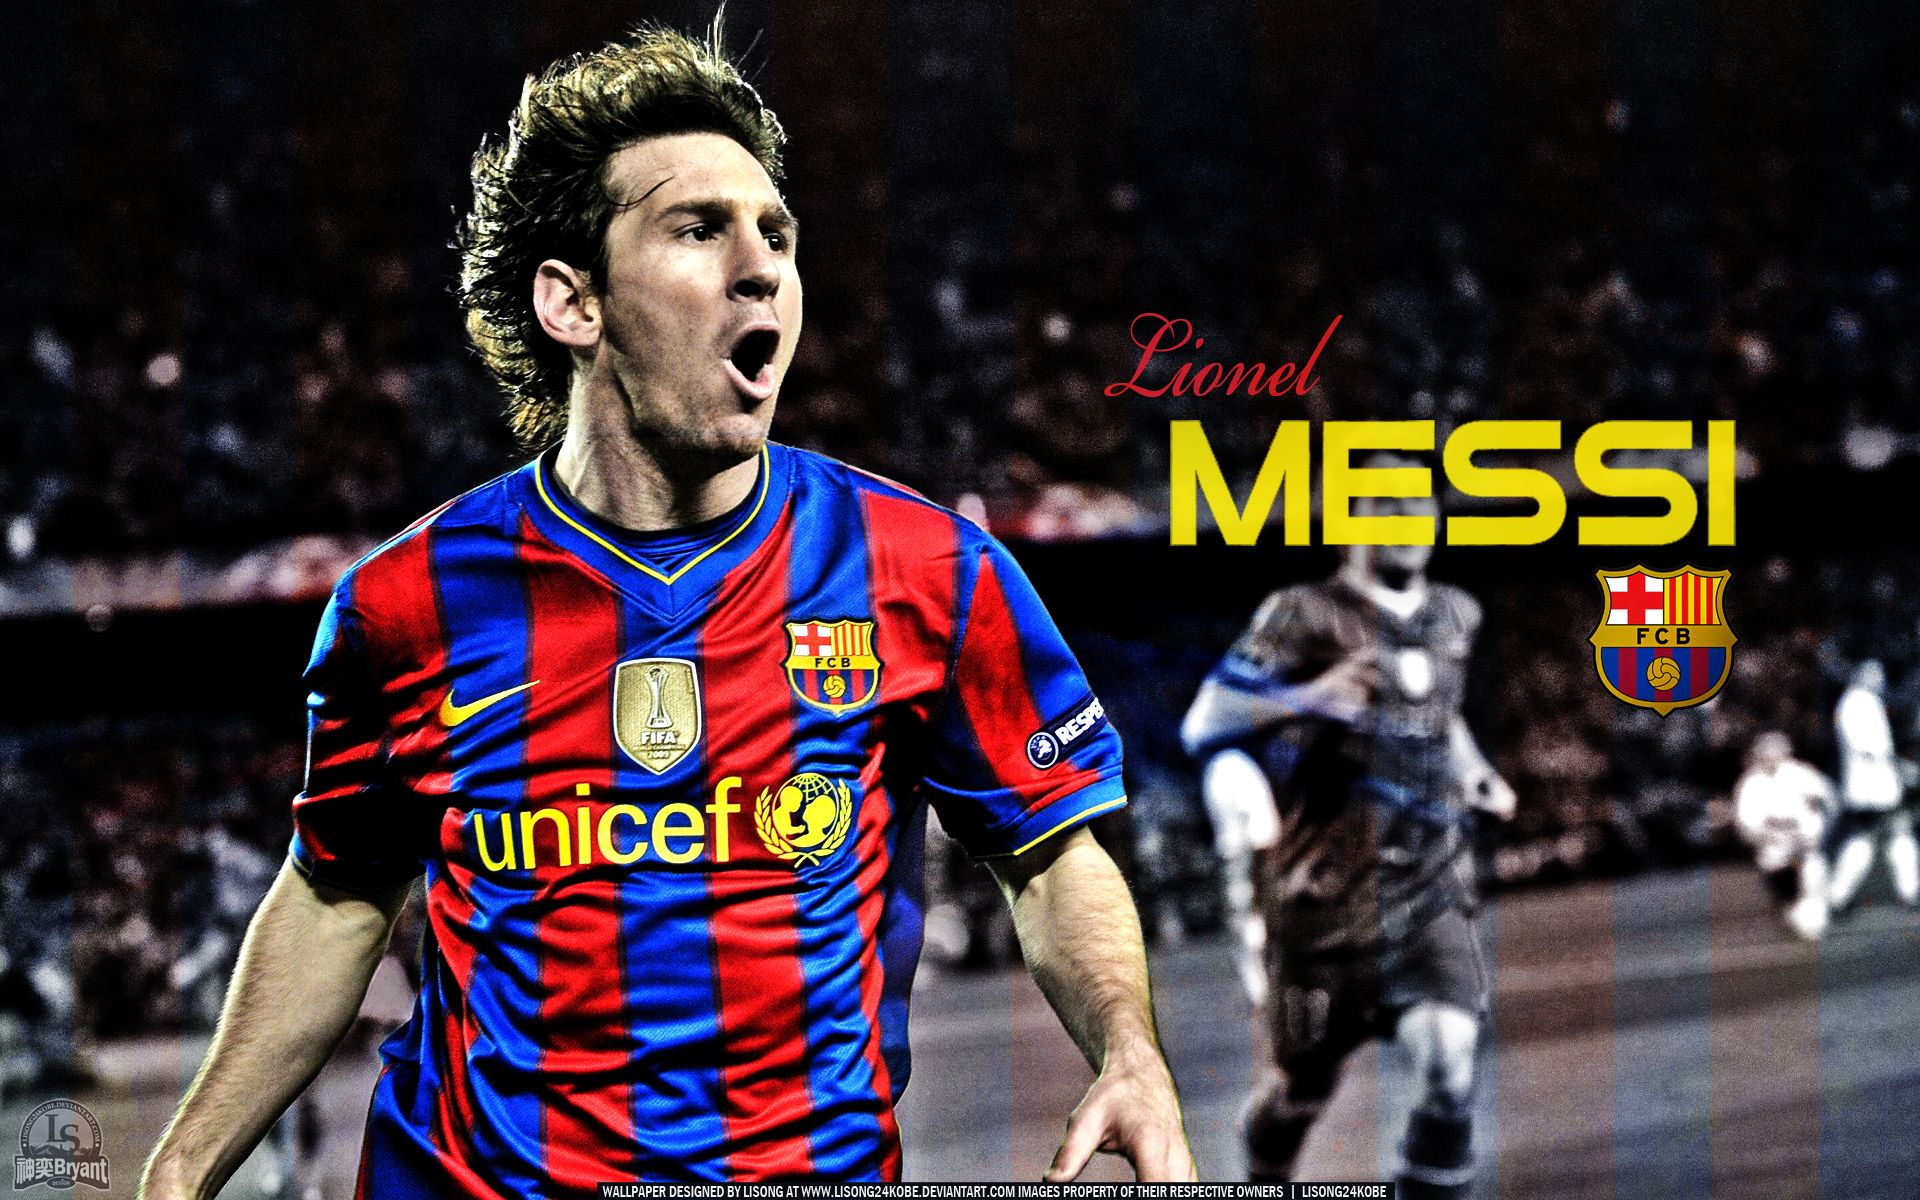 messi wallpaper 2014 hd | fifa worldcup | pinterest | messi